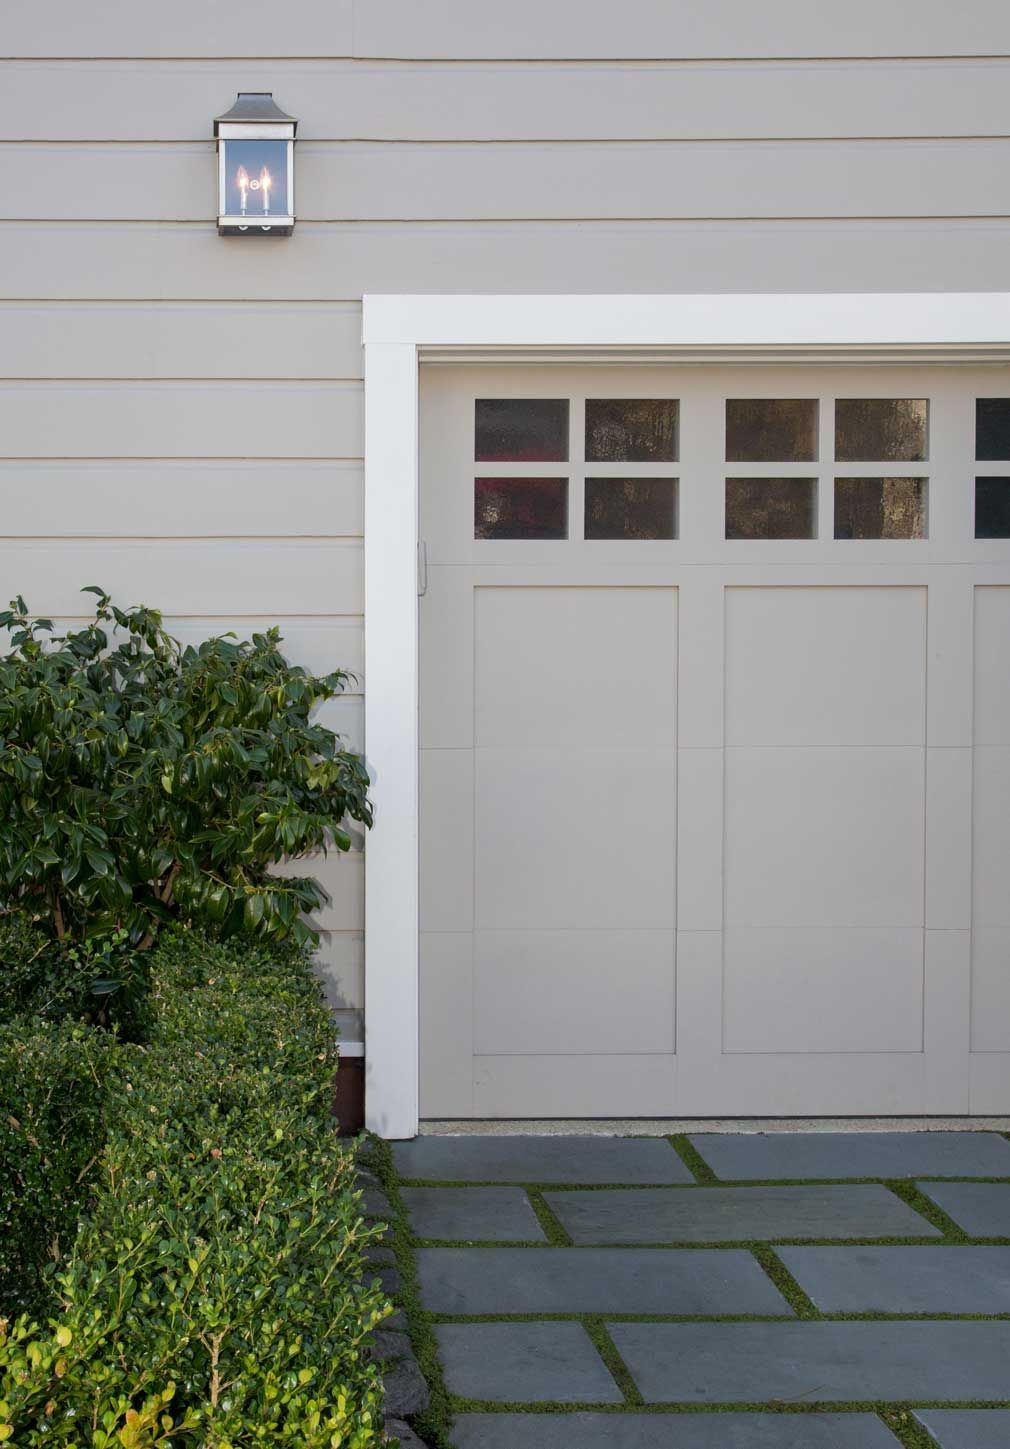 Carriage garage doors without windows  UECo  Portfolio  Environment  Exterior  Outdoors  Pinterest